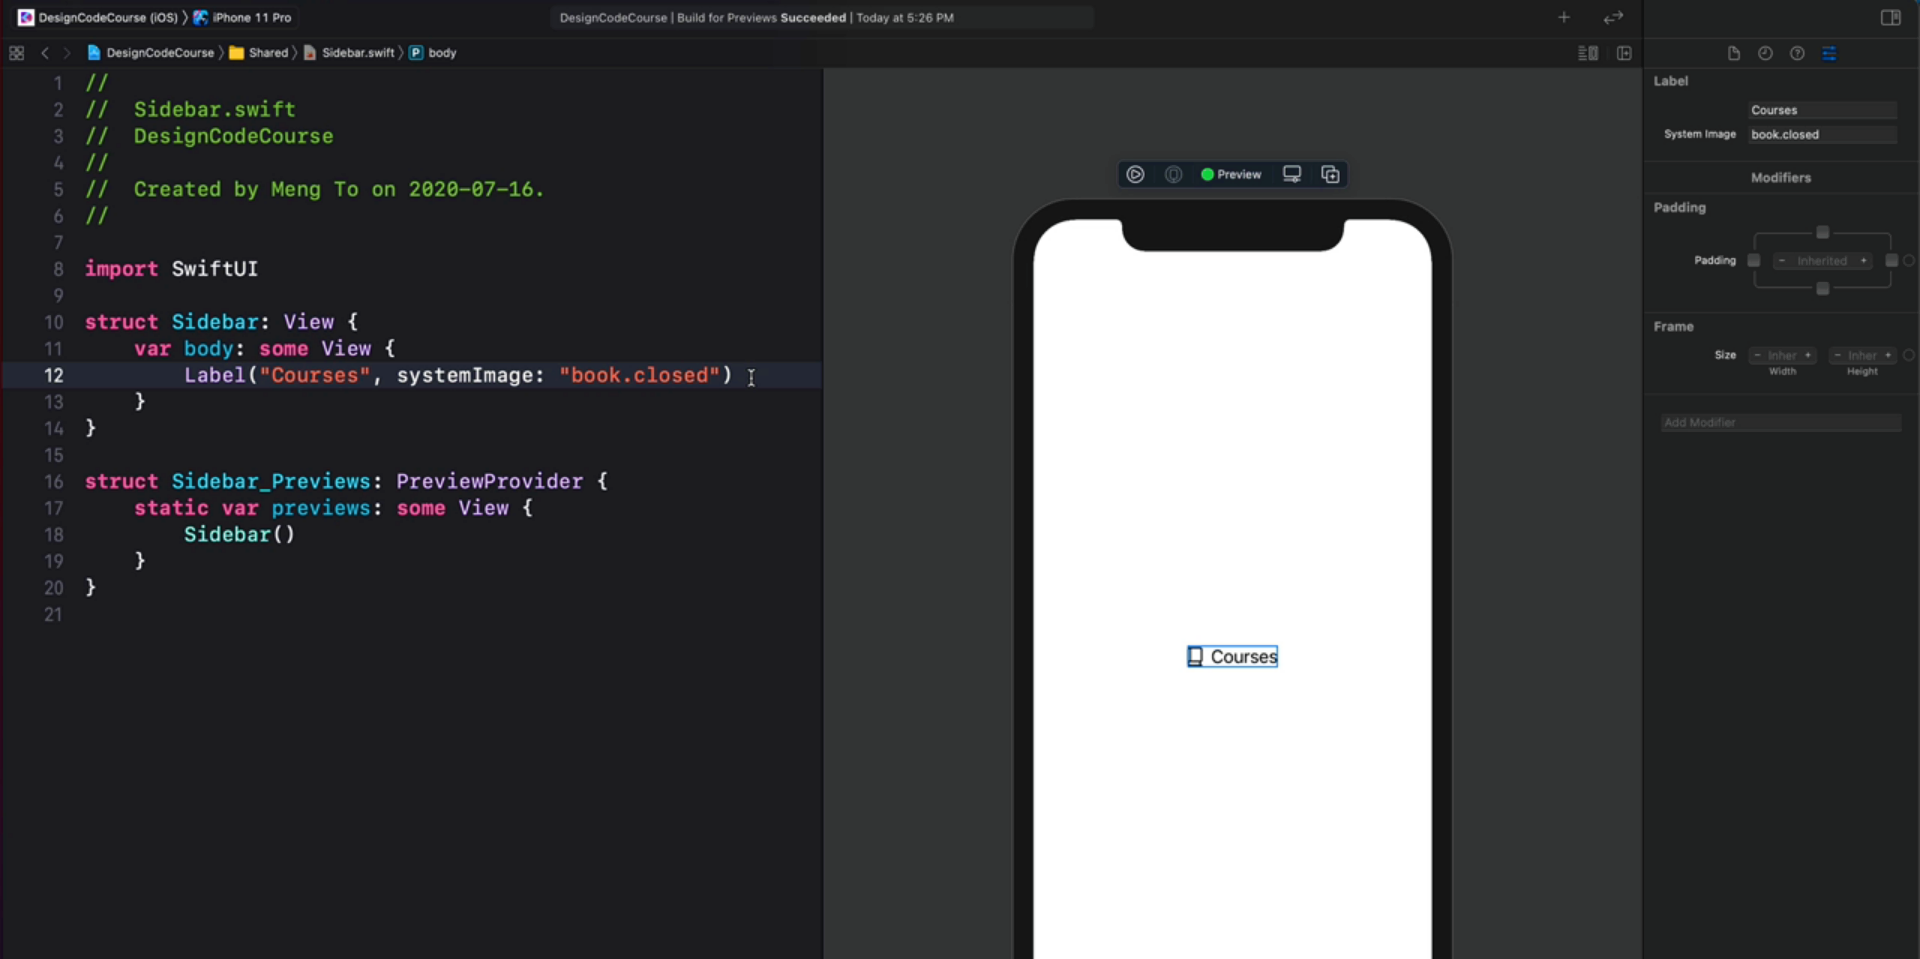 swiftui-section4-2